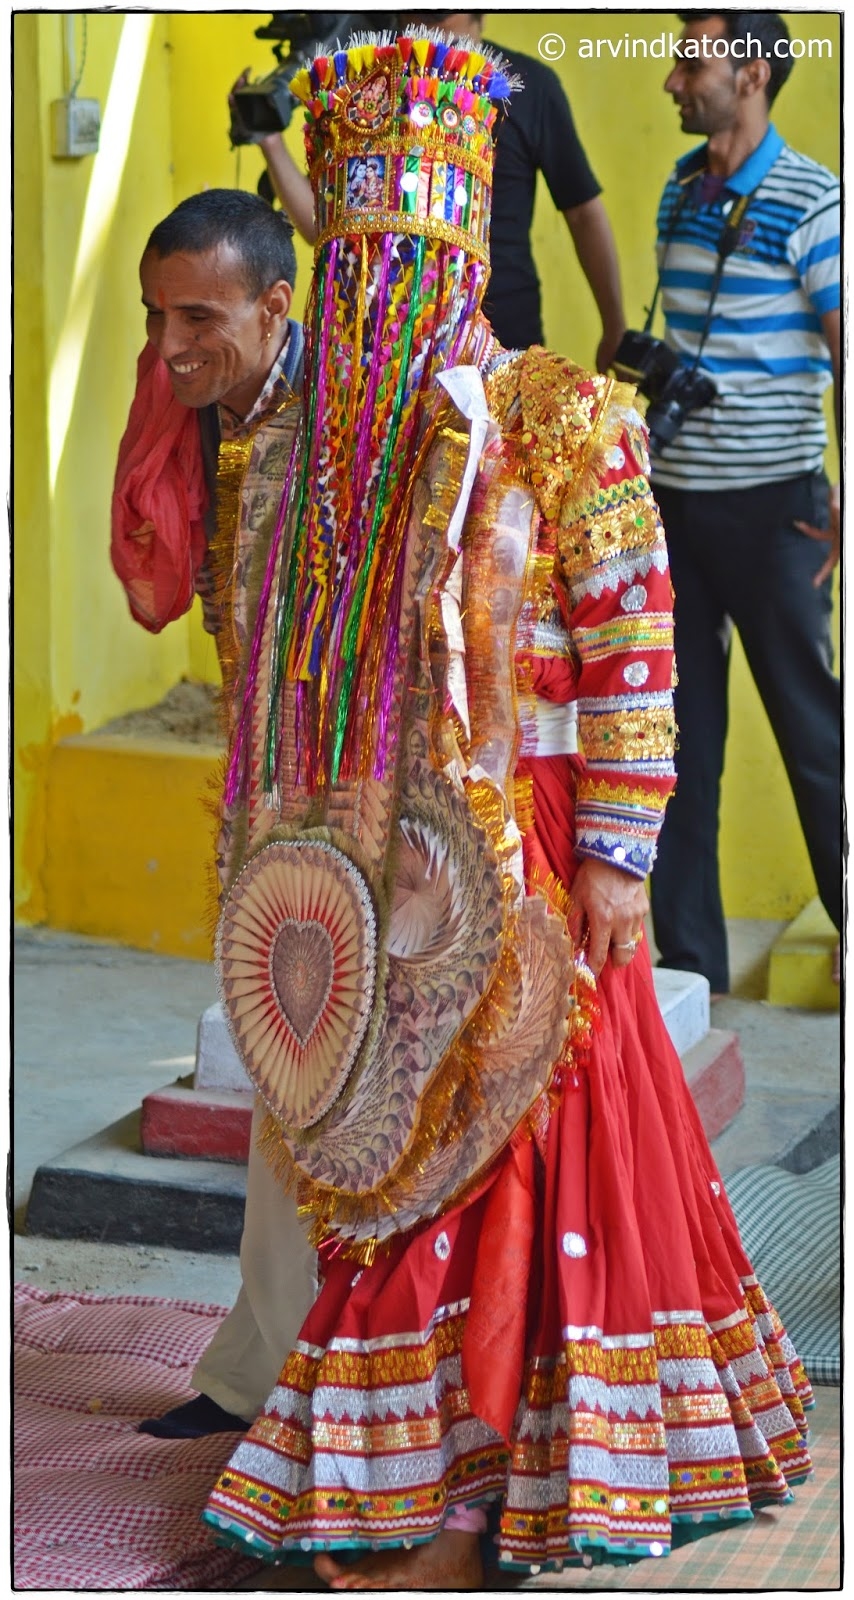 Kad, Groom, Taditional Wedding Dress, Gaddi, Himachali Culture,